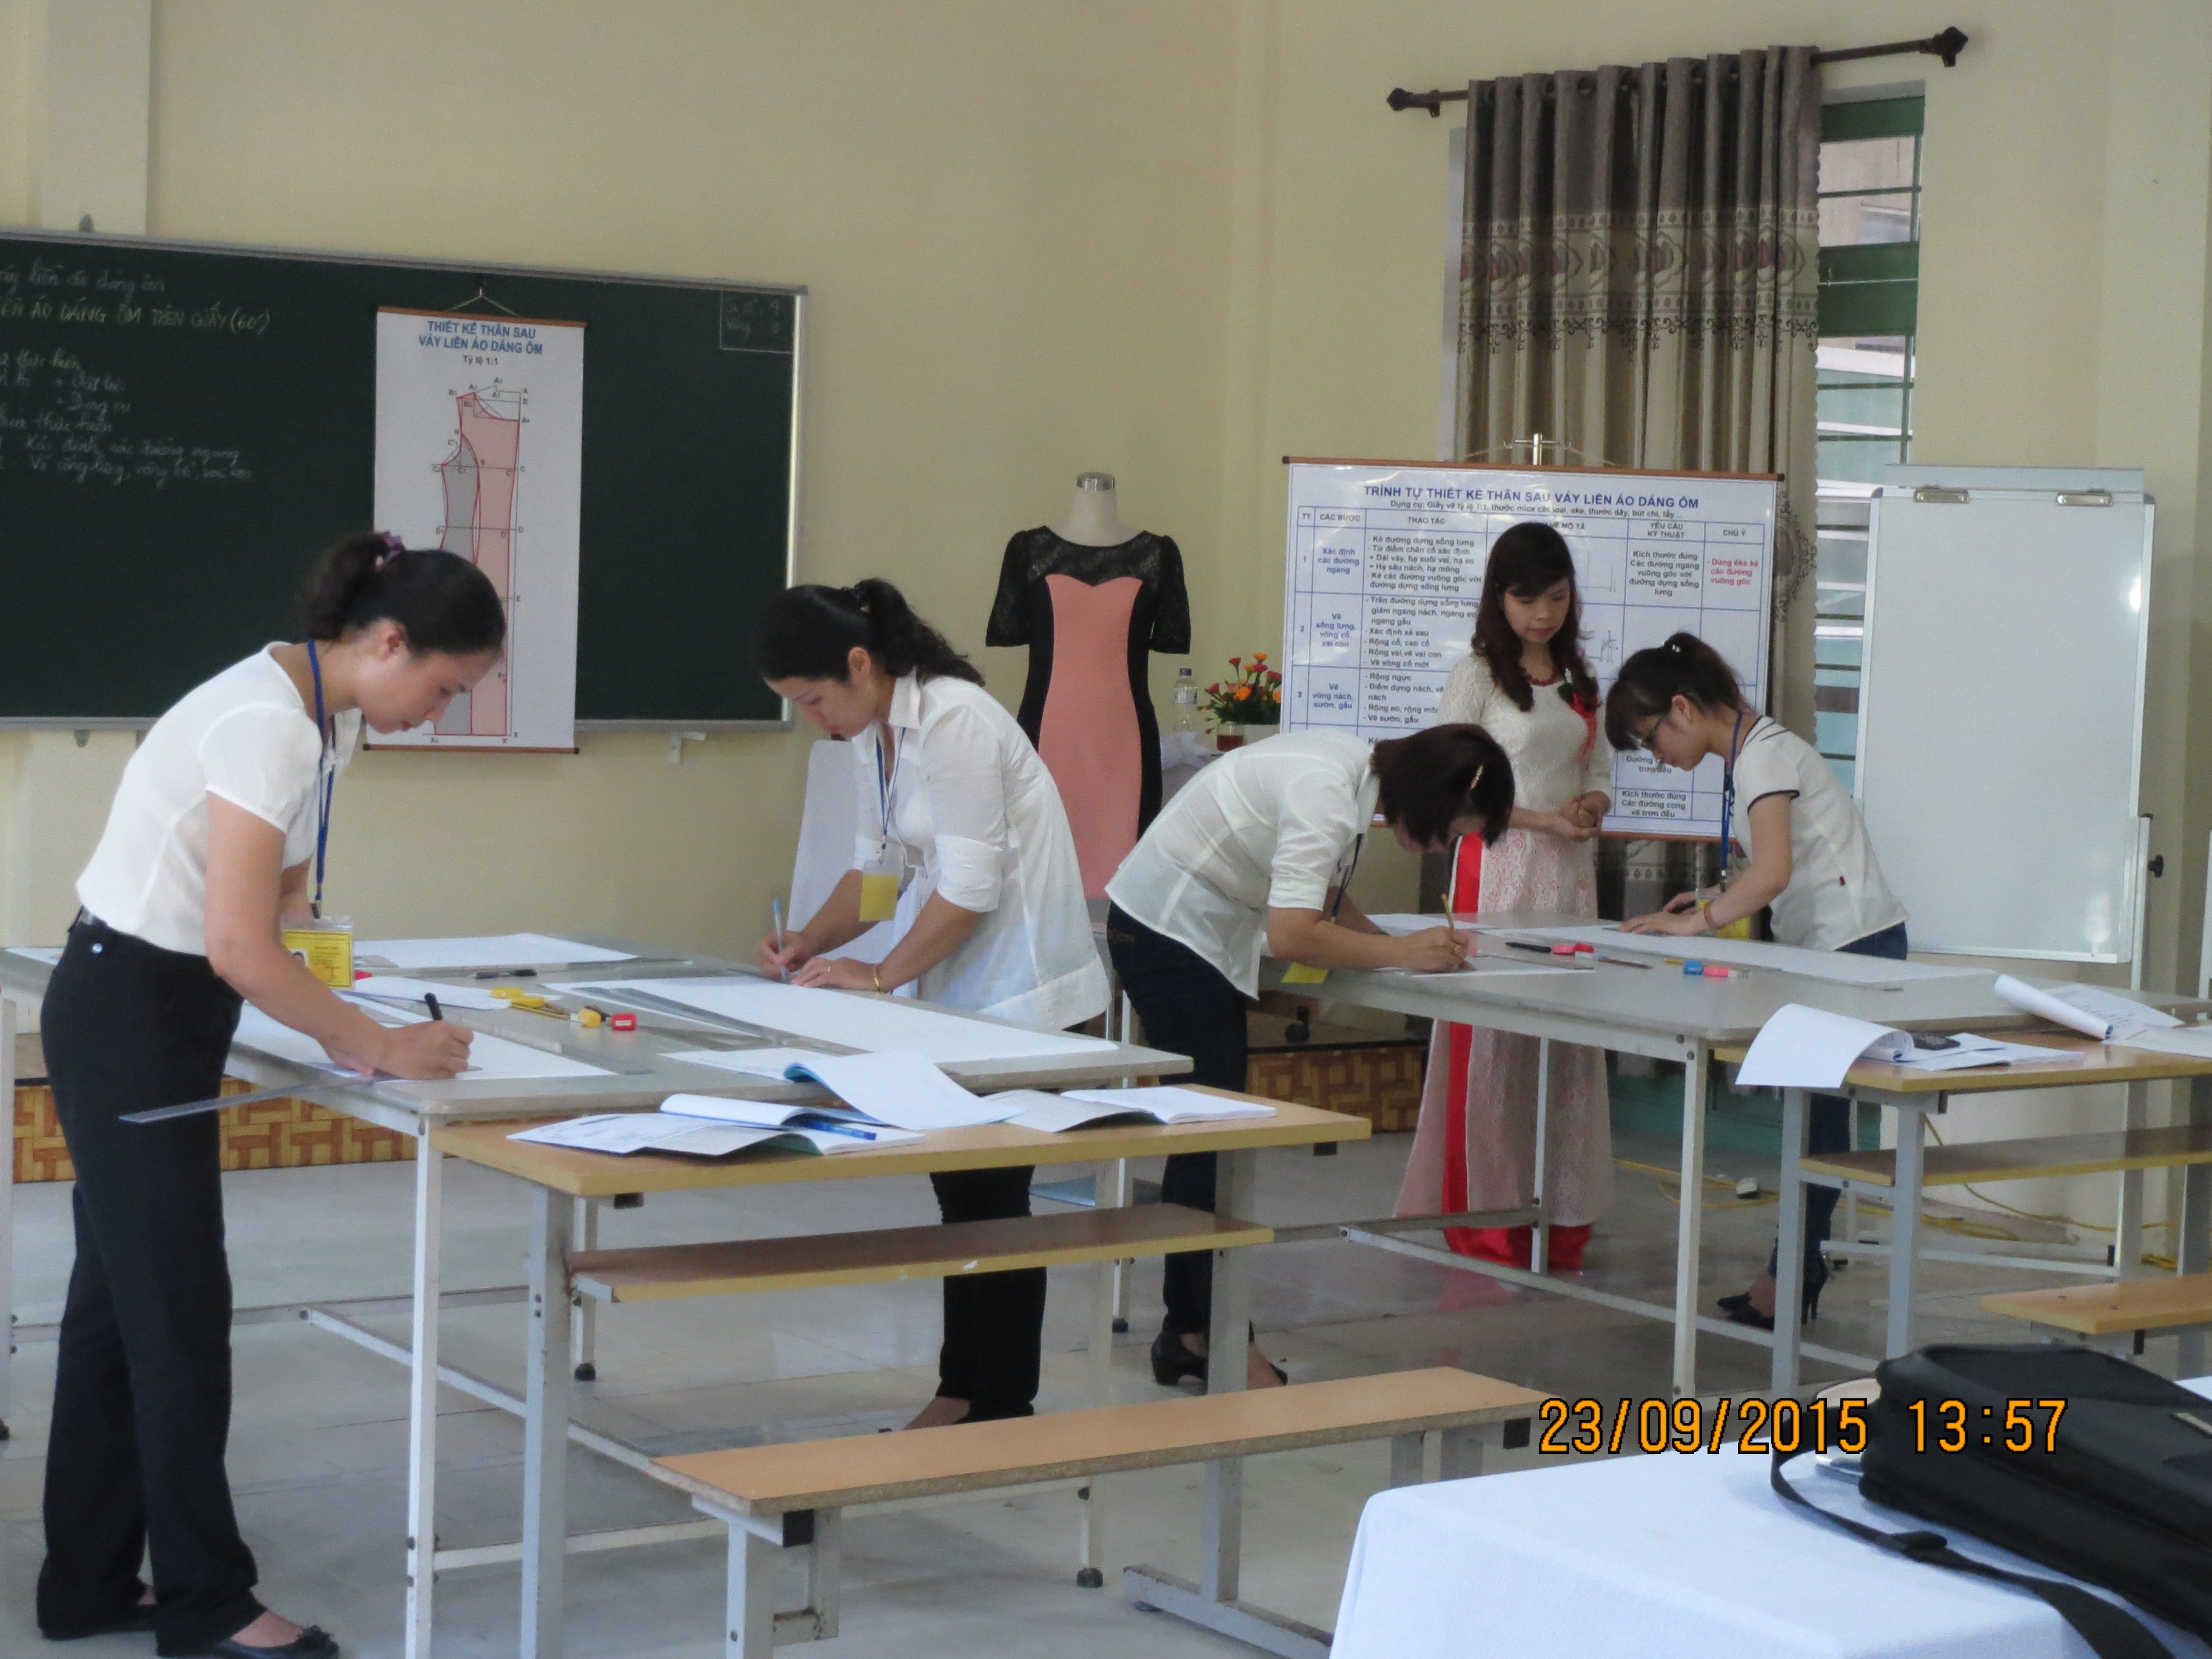 Practice session of Sewing